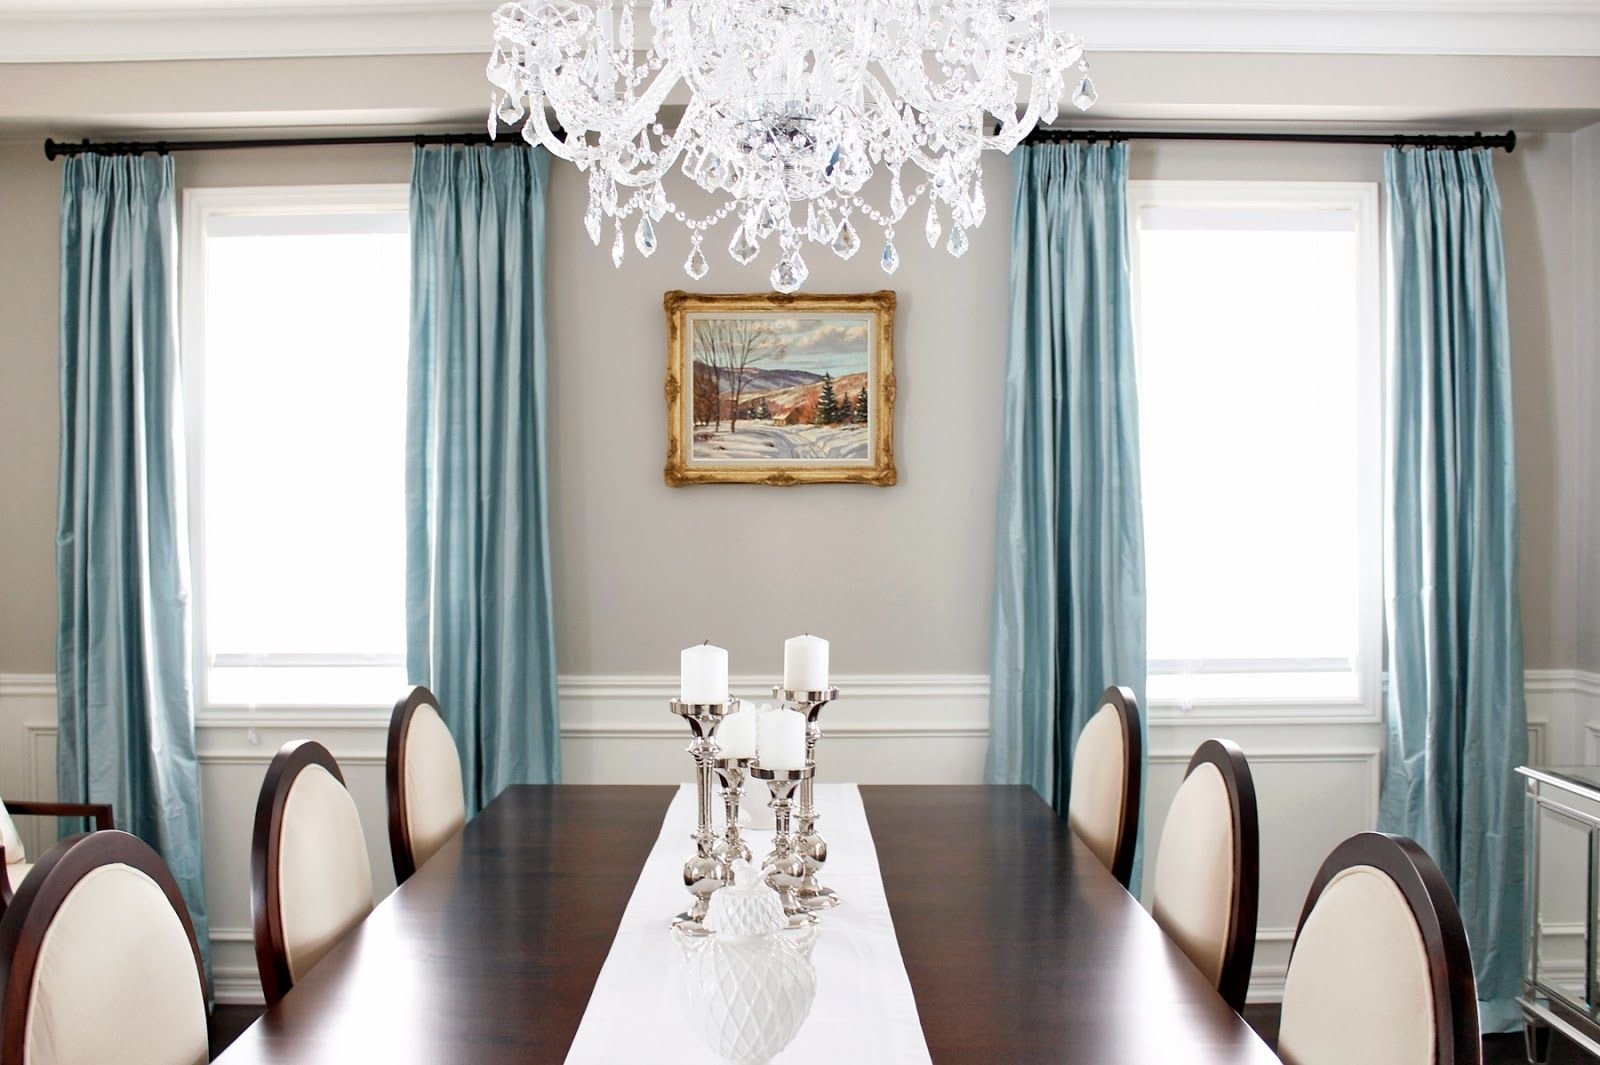 10 Wonderful Curtains For Dining Room Ideas dining room curtain ideas custom decor grande chandelier with soft 2020